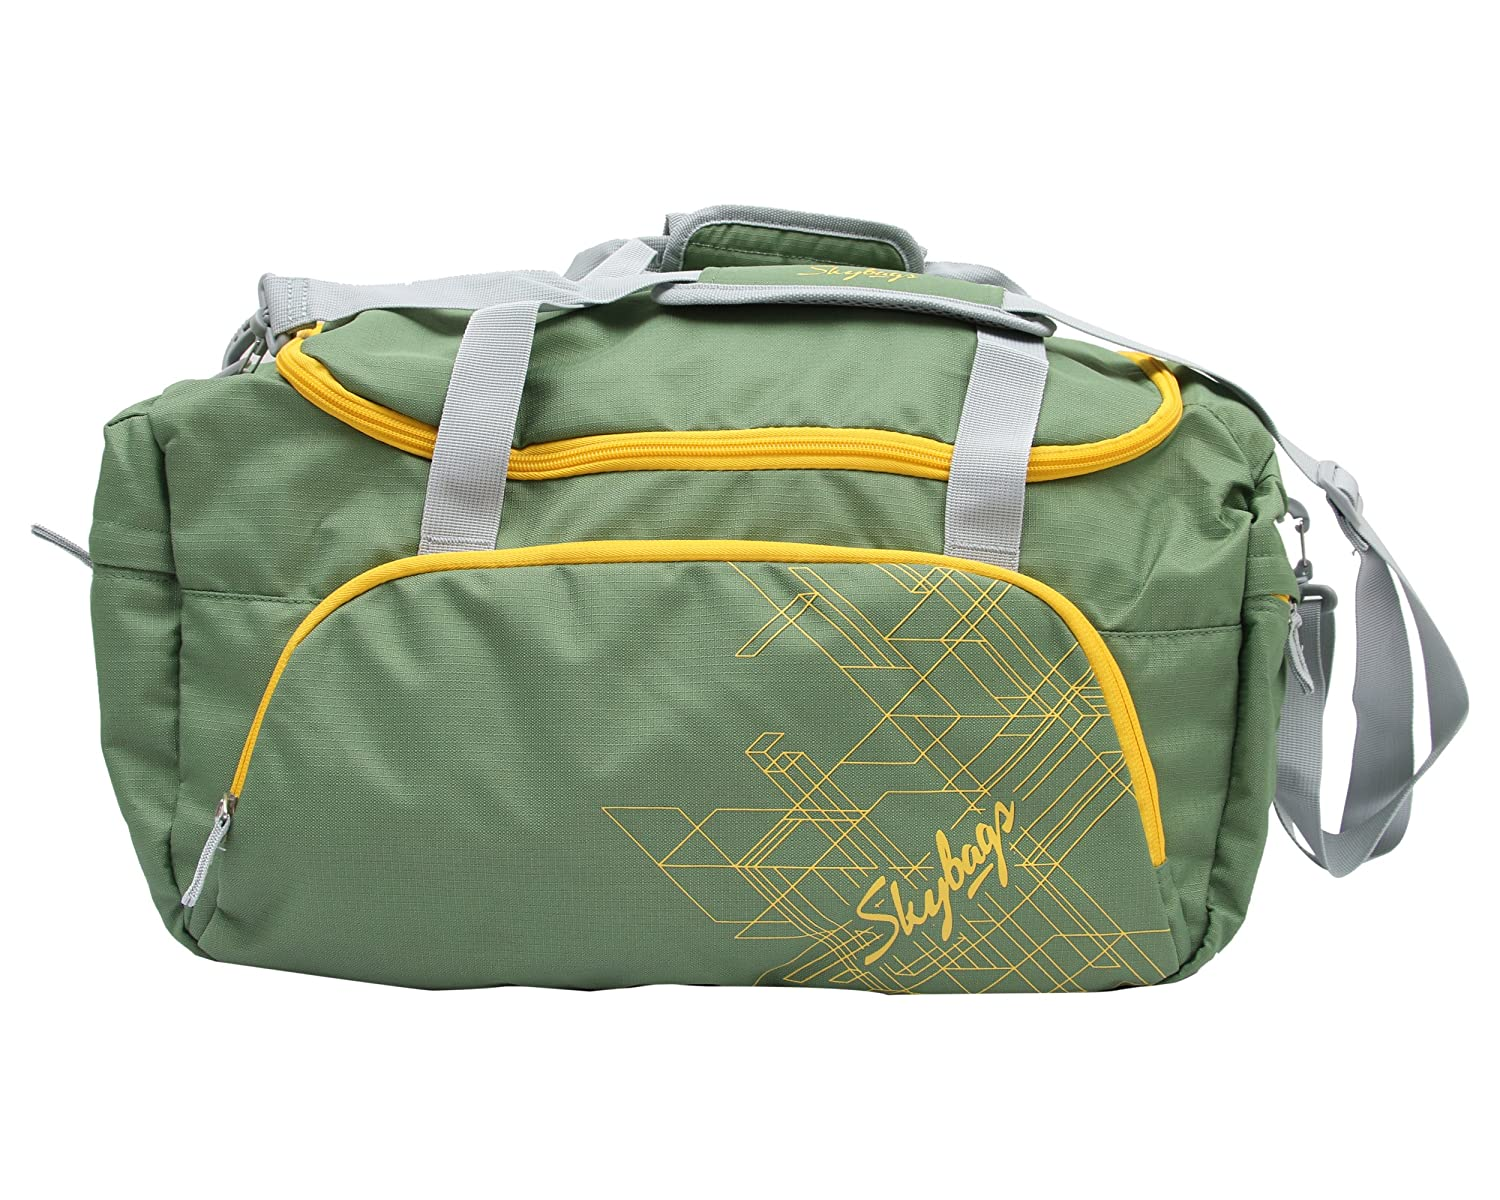 Skybags Sparks Others 59 centimeters Travel Duffle at Rs.1450 + Free Shipping discount deal